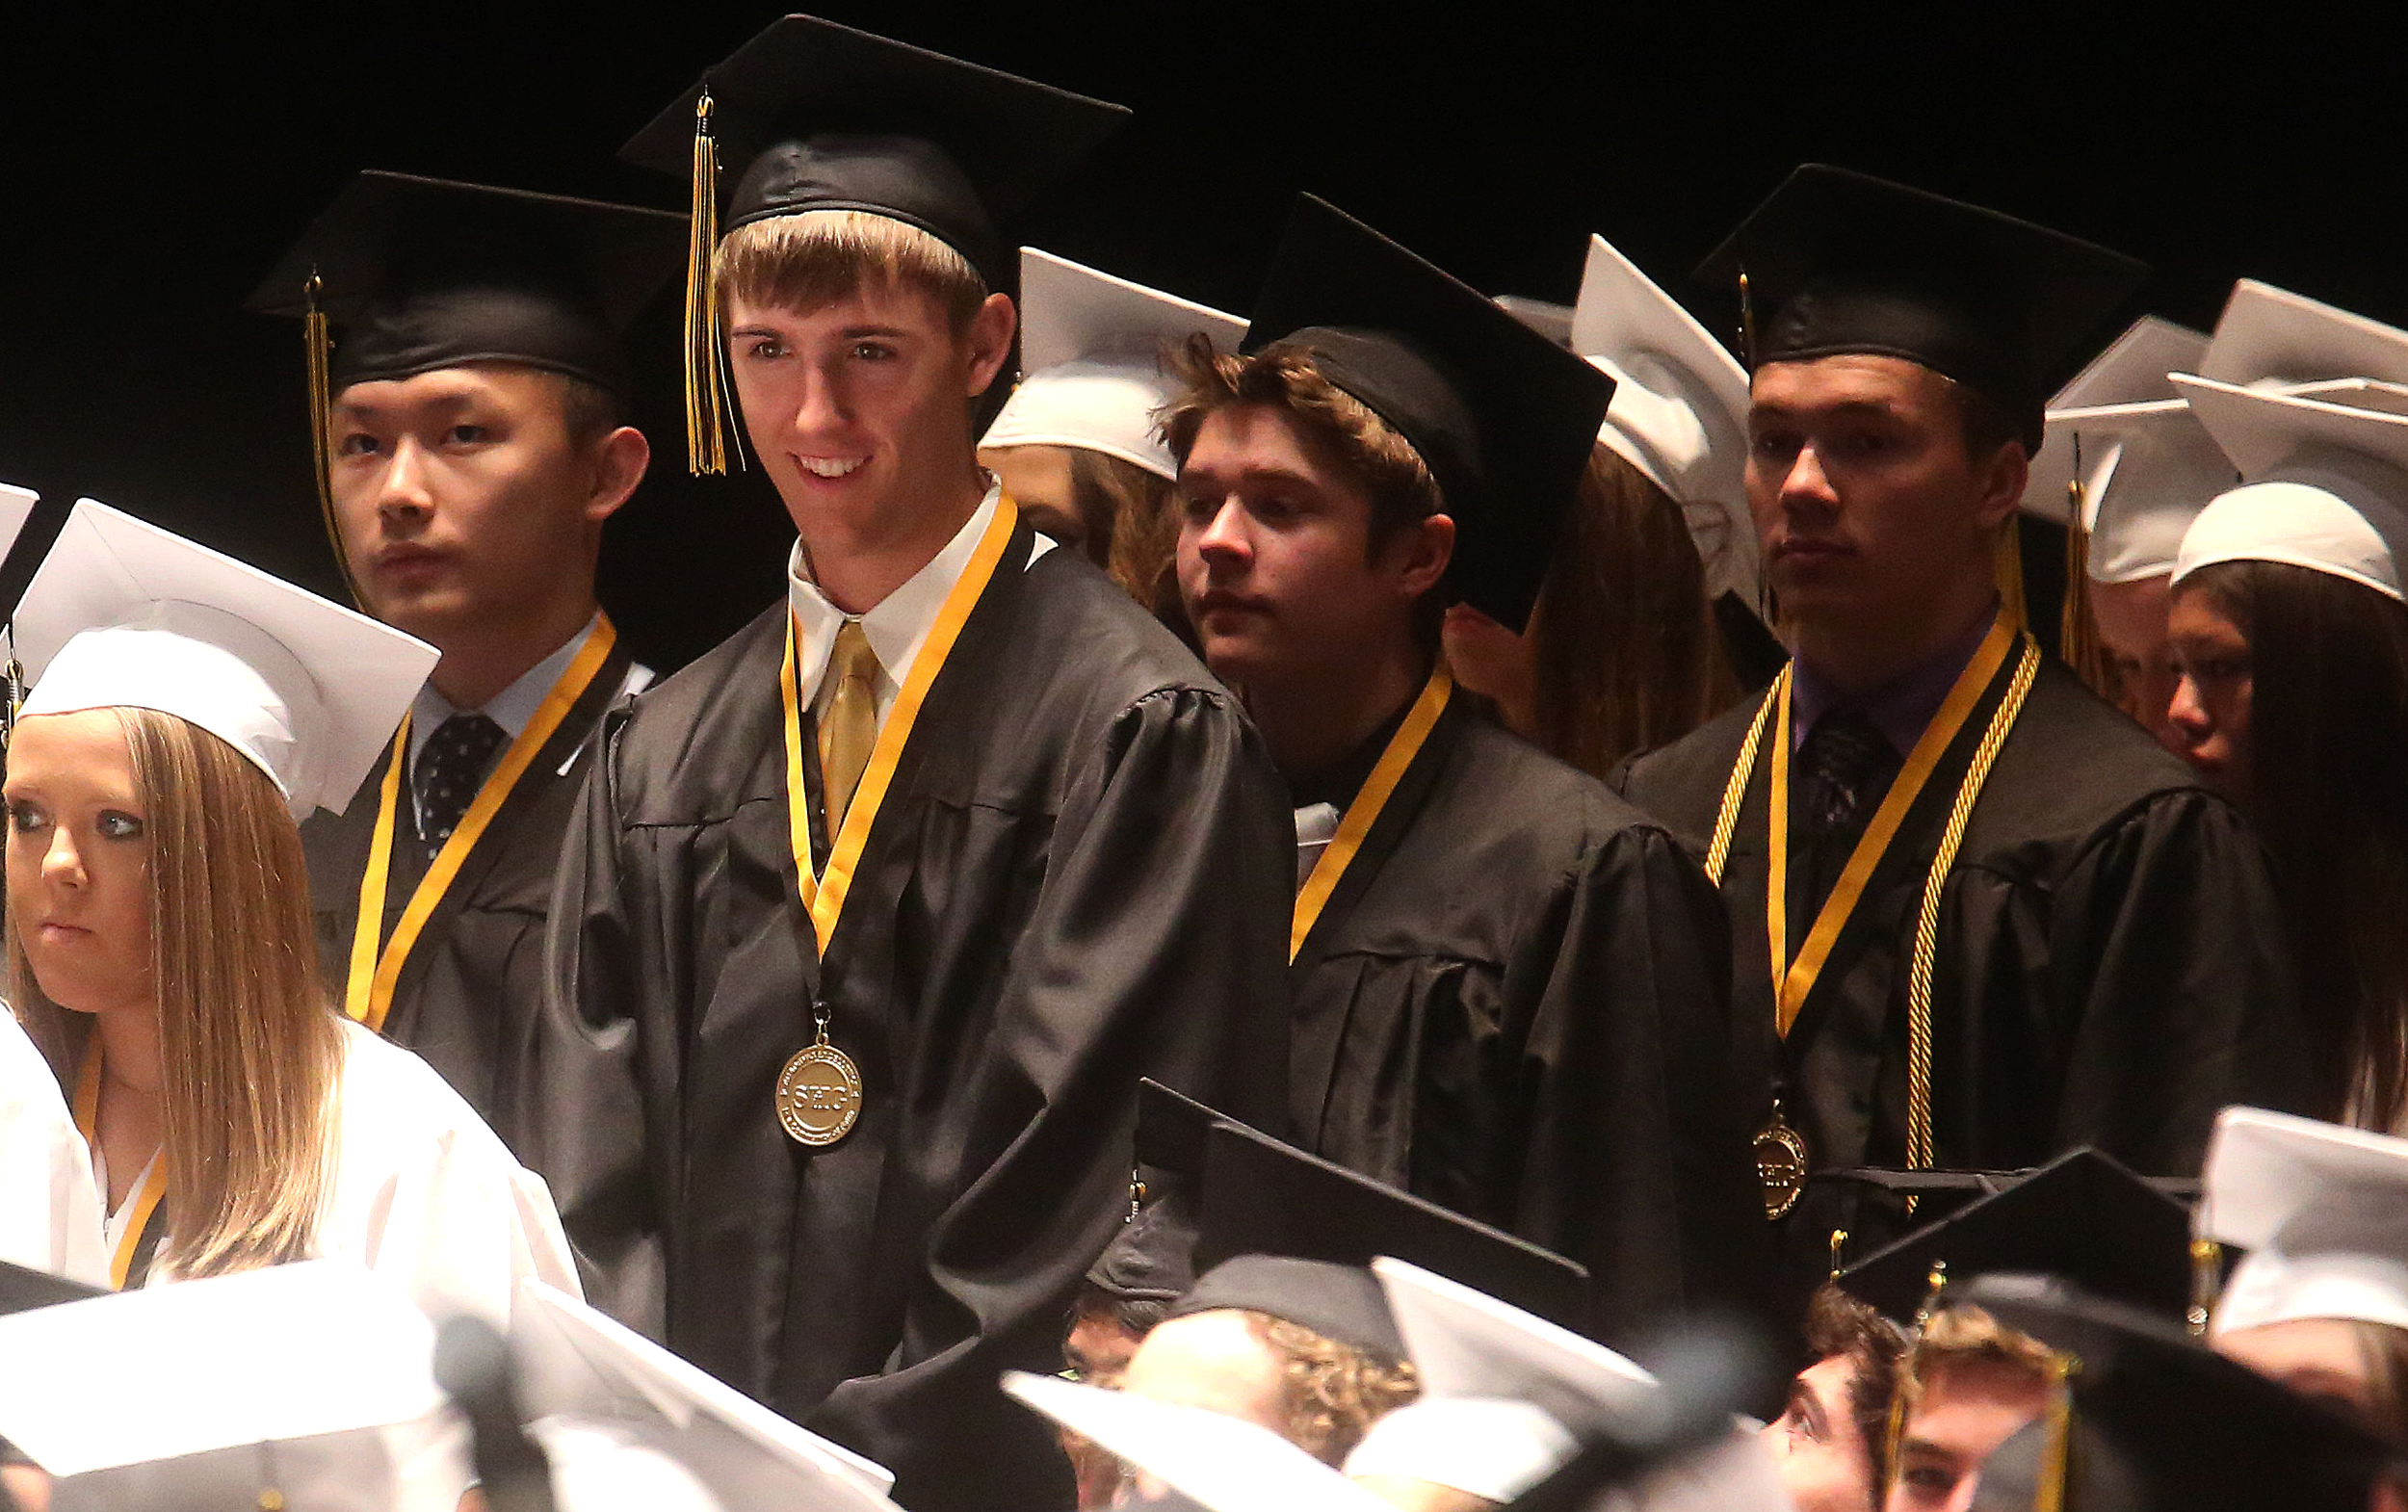 Soon-to-be graduate Jack Staten smiles and waits moments before he received his diploma onstage on Sunday. David Spencer/The State Journal-Register